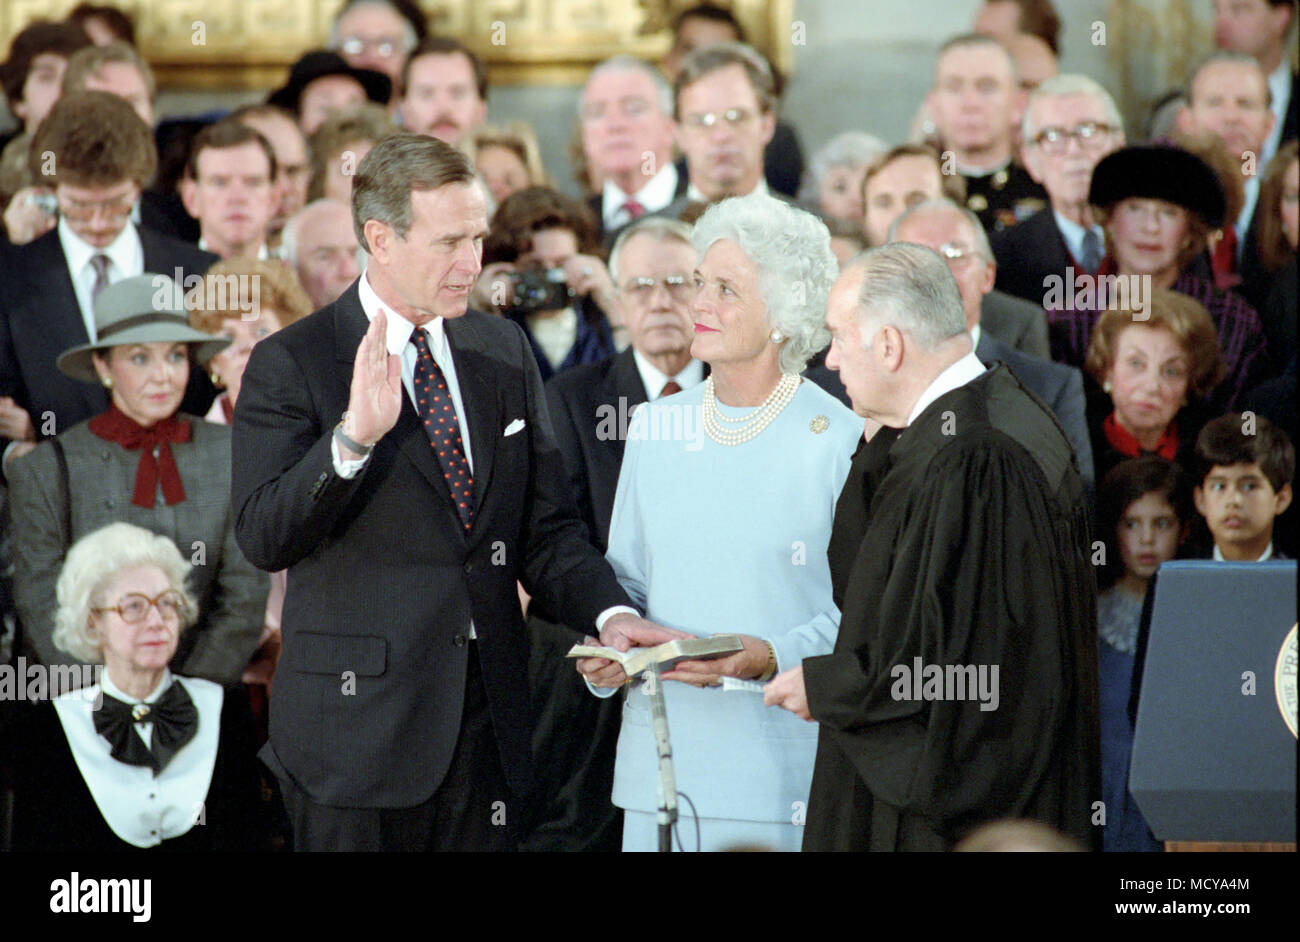 1/21/1985 Vice President Bush taking his oath of office with Justice Potter Stewart with Barbara Bush looking on in the US Capitol - Stock Image